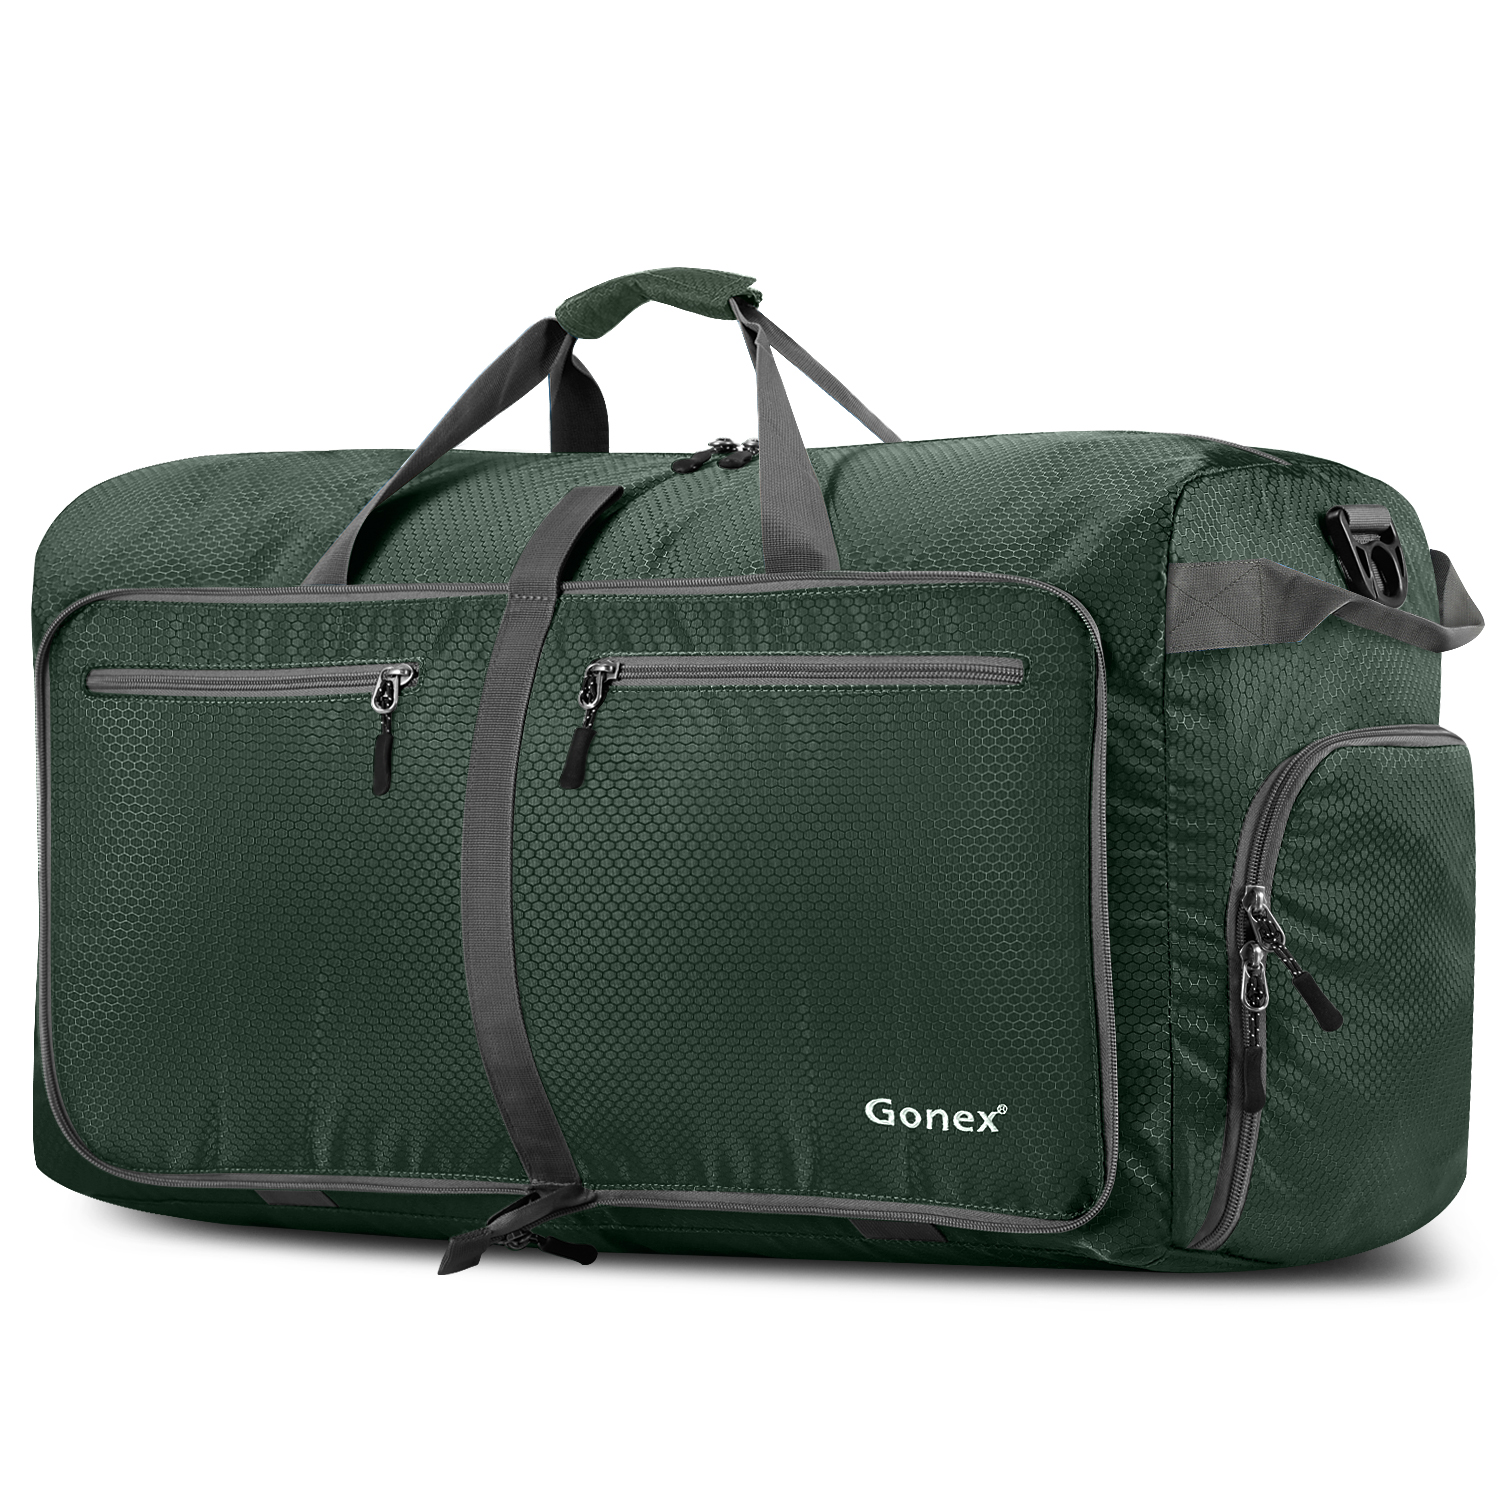 Gonex 100L Foldable Travel Duffel Bag, Over-sized Luggage Travel Duffle 5 Colors Options by Gonex